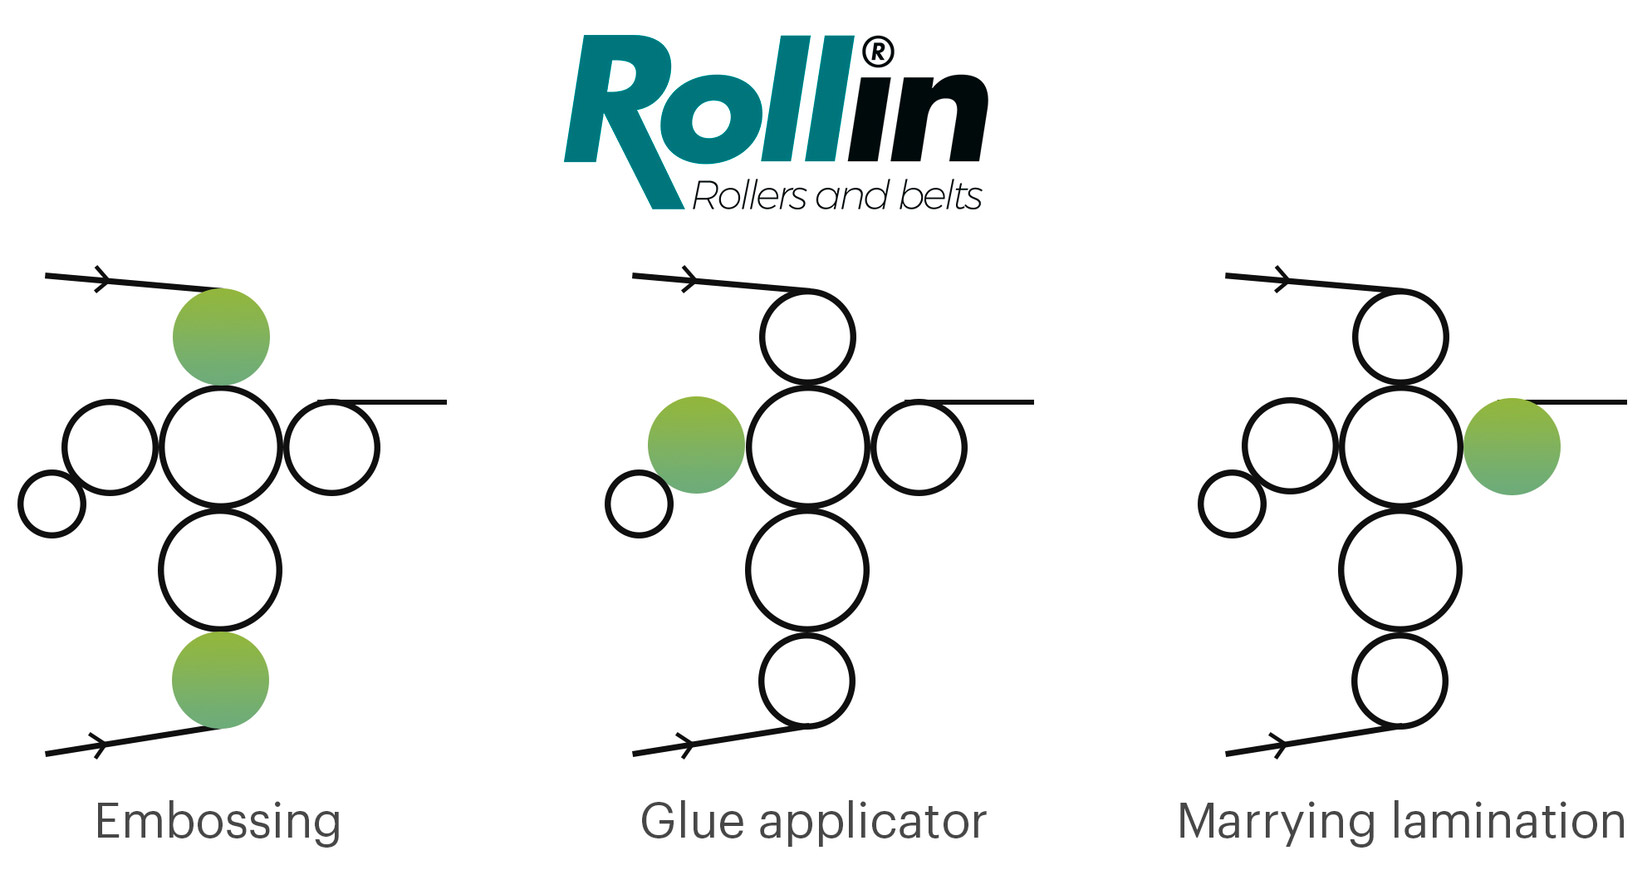 roll-positions-rollin-tissue